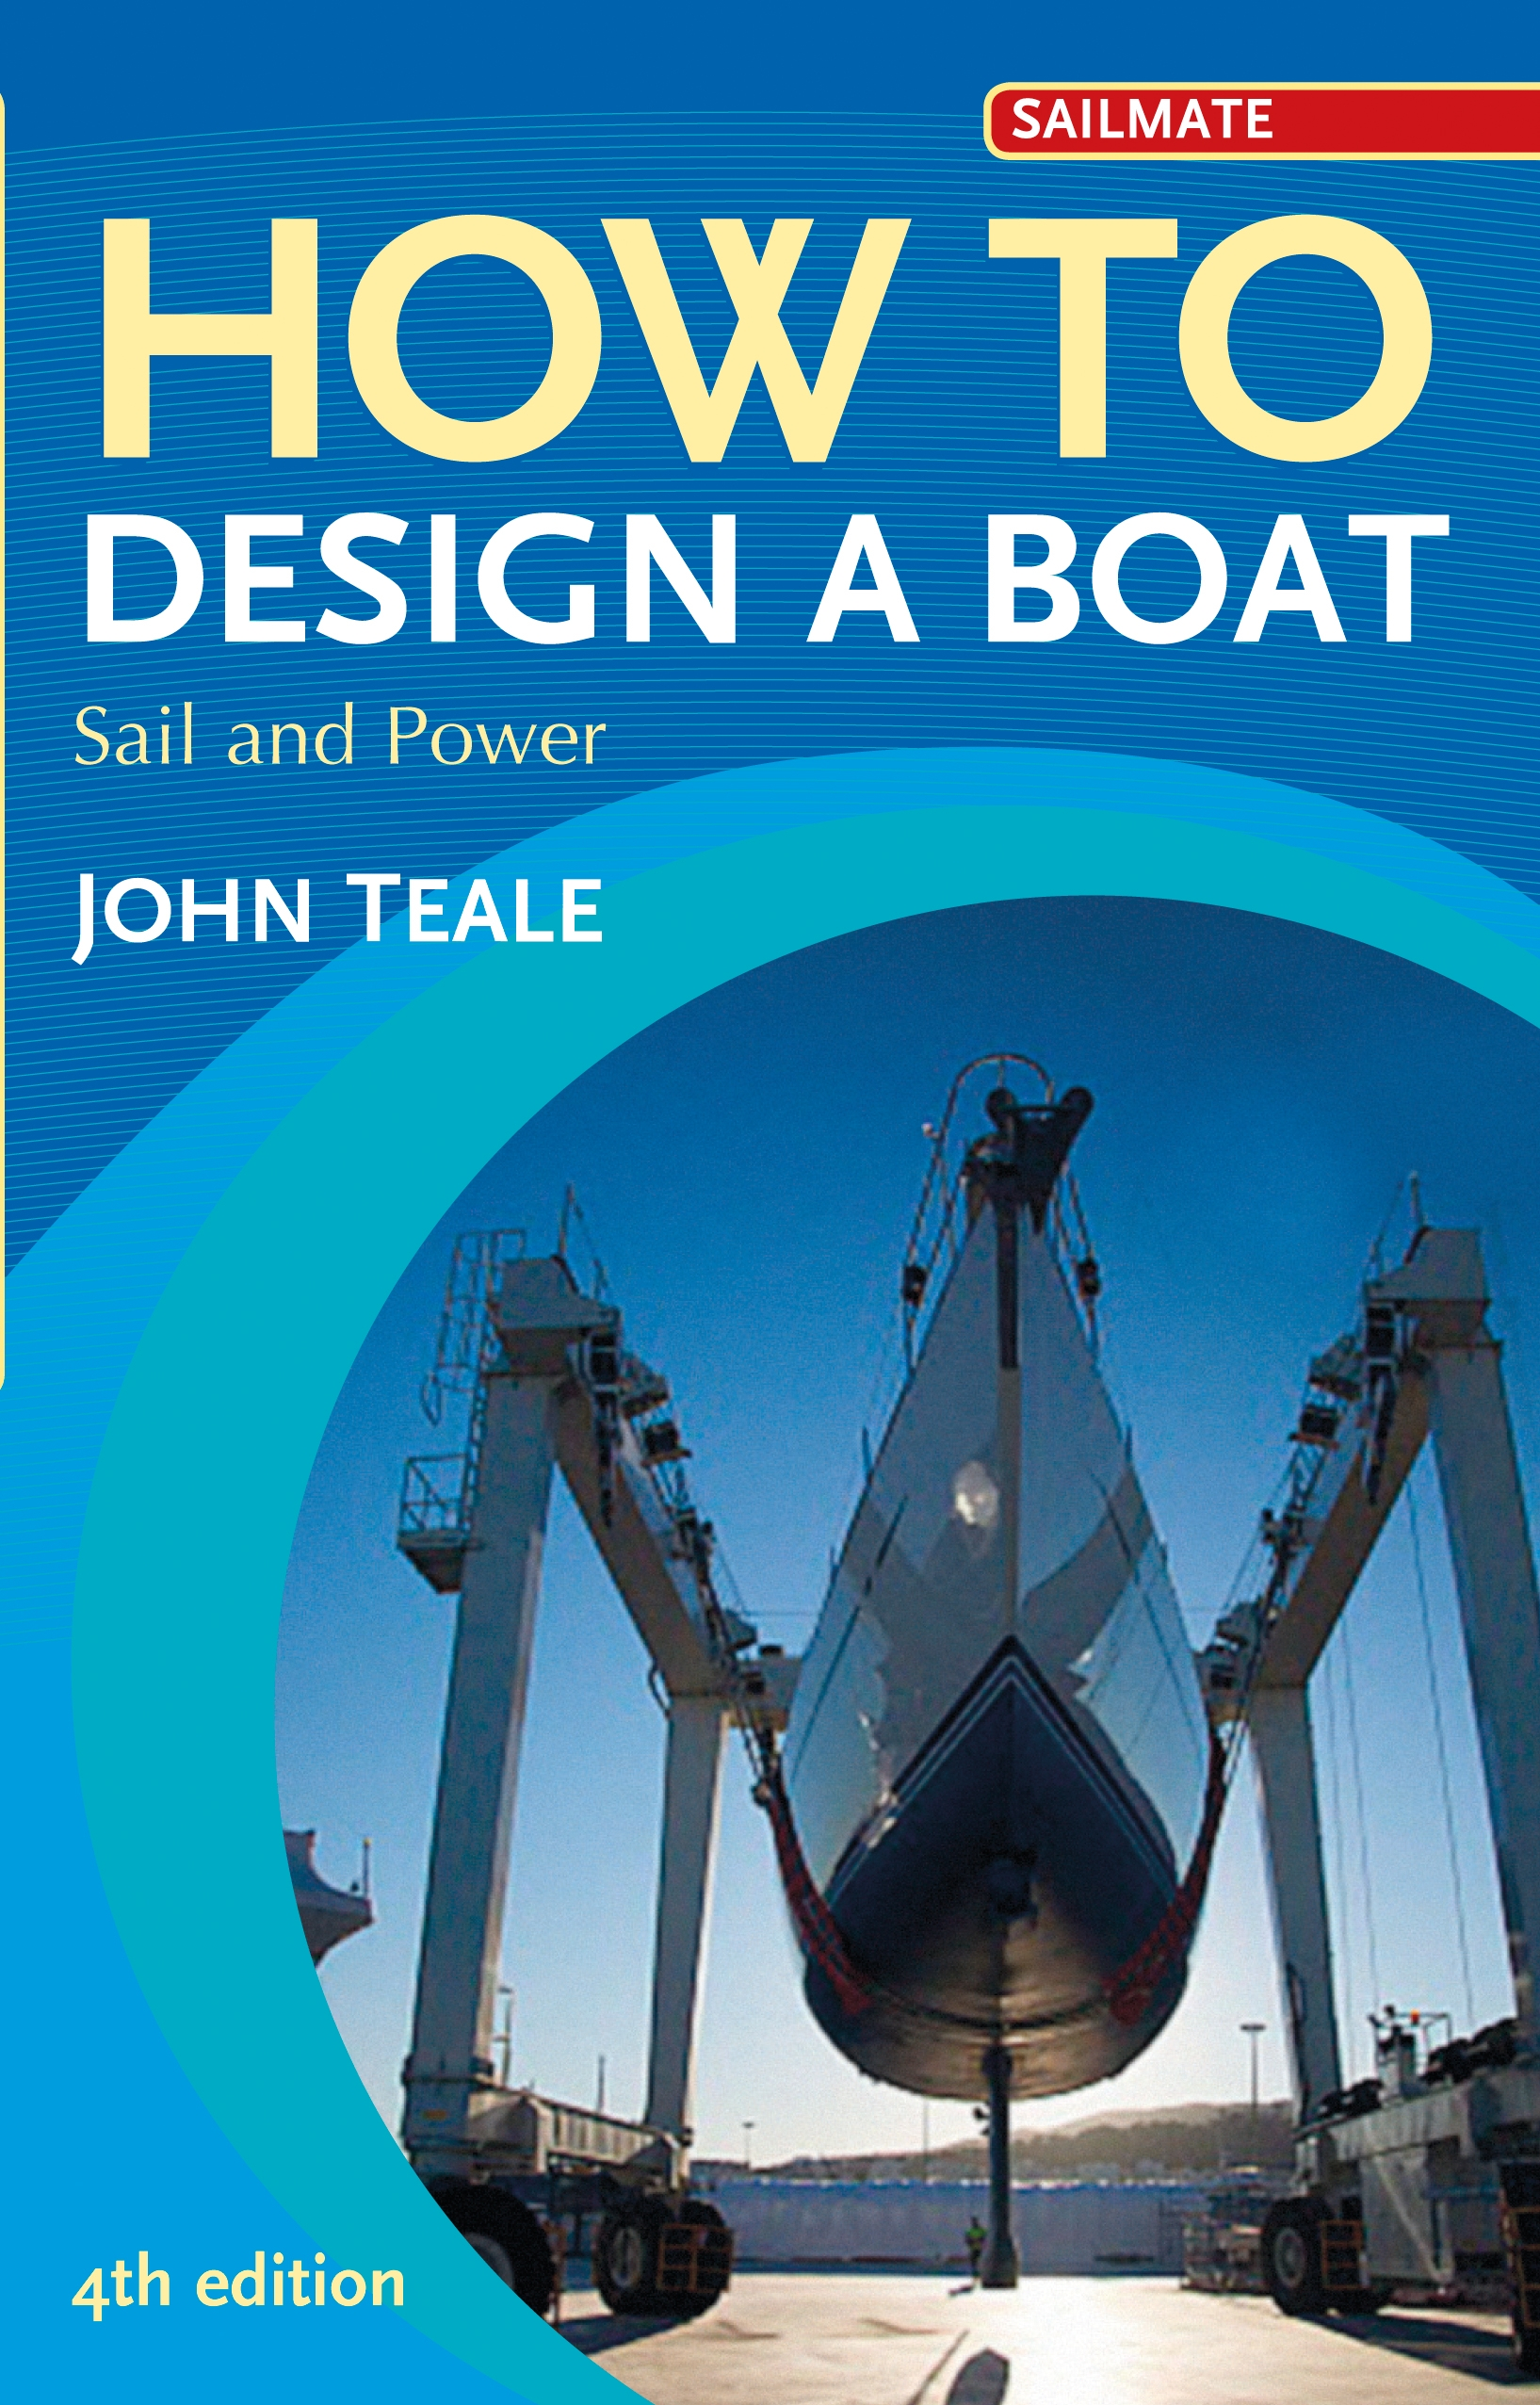 How to Design a Boat Sail and Power